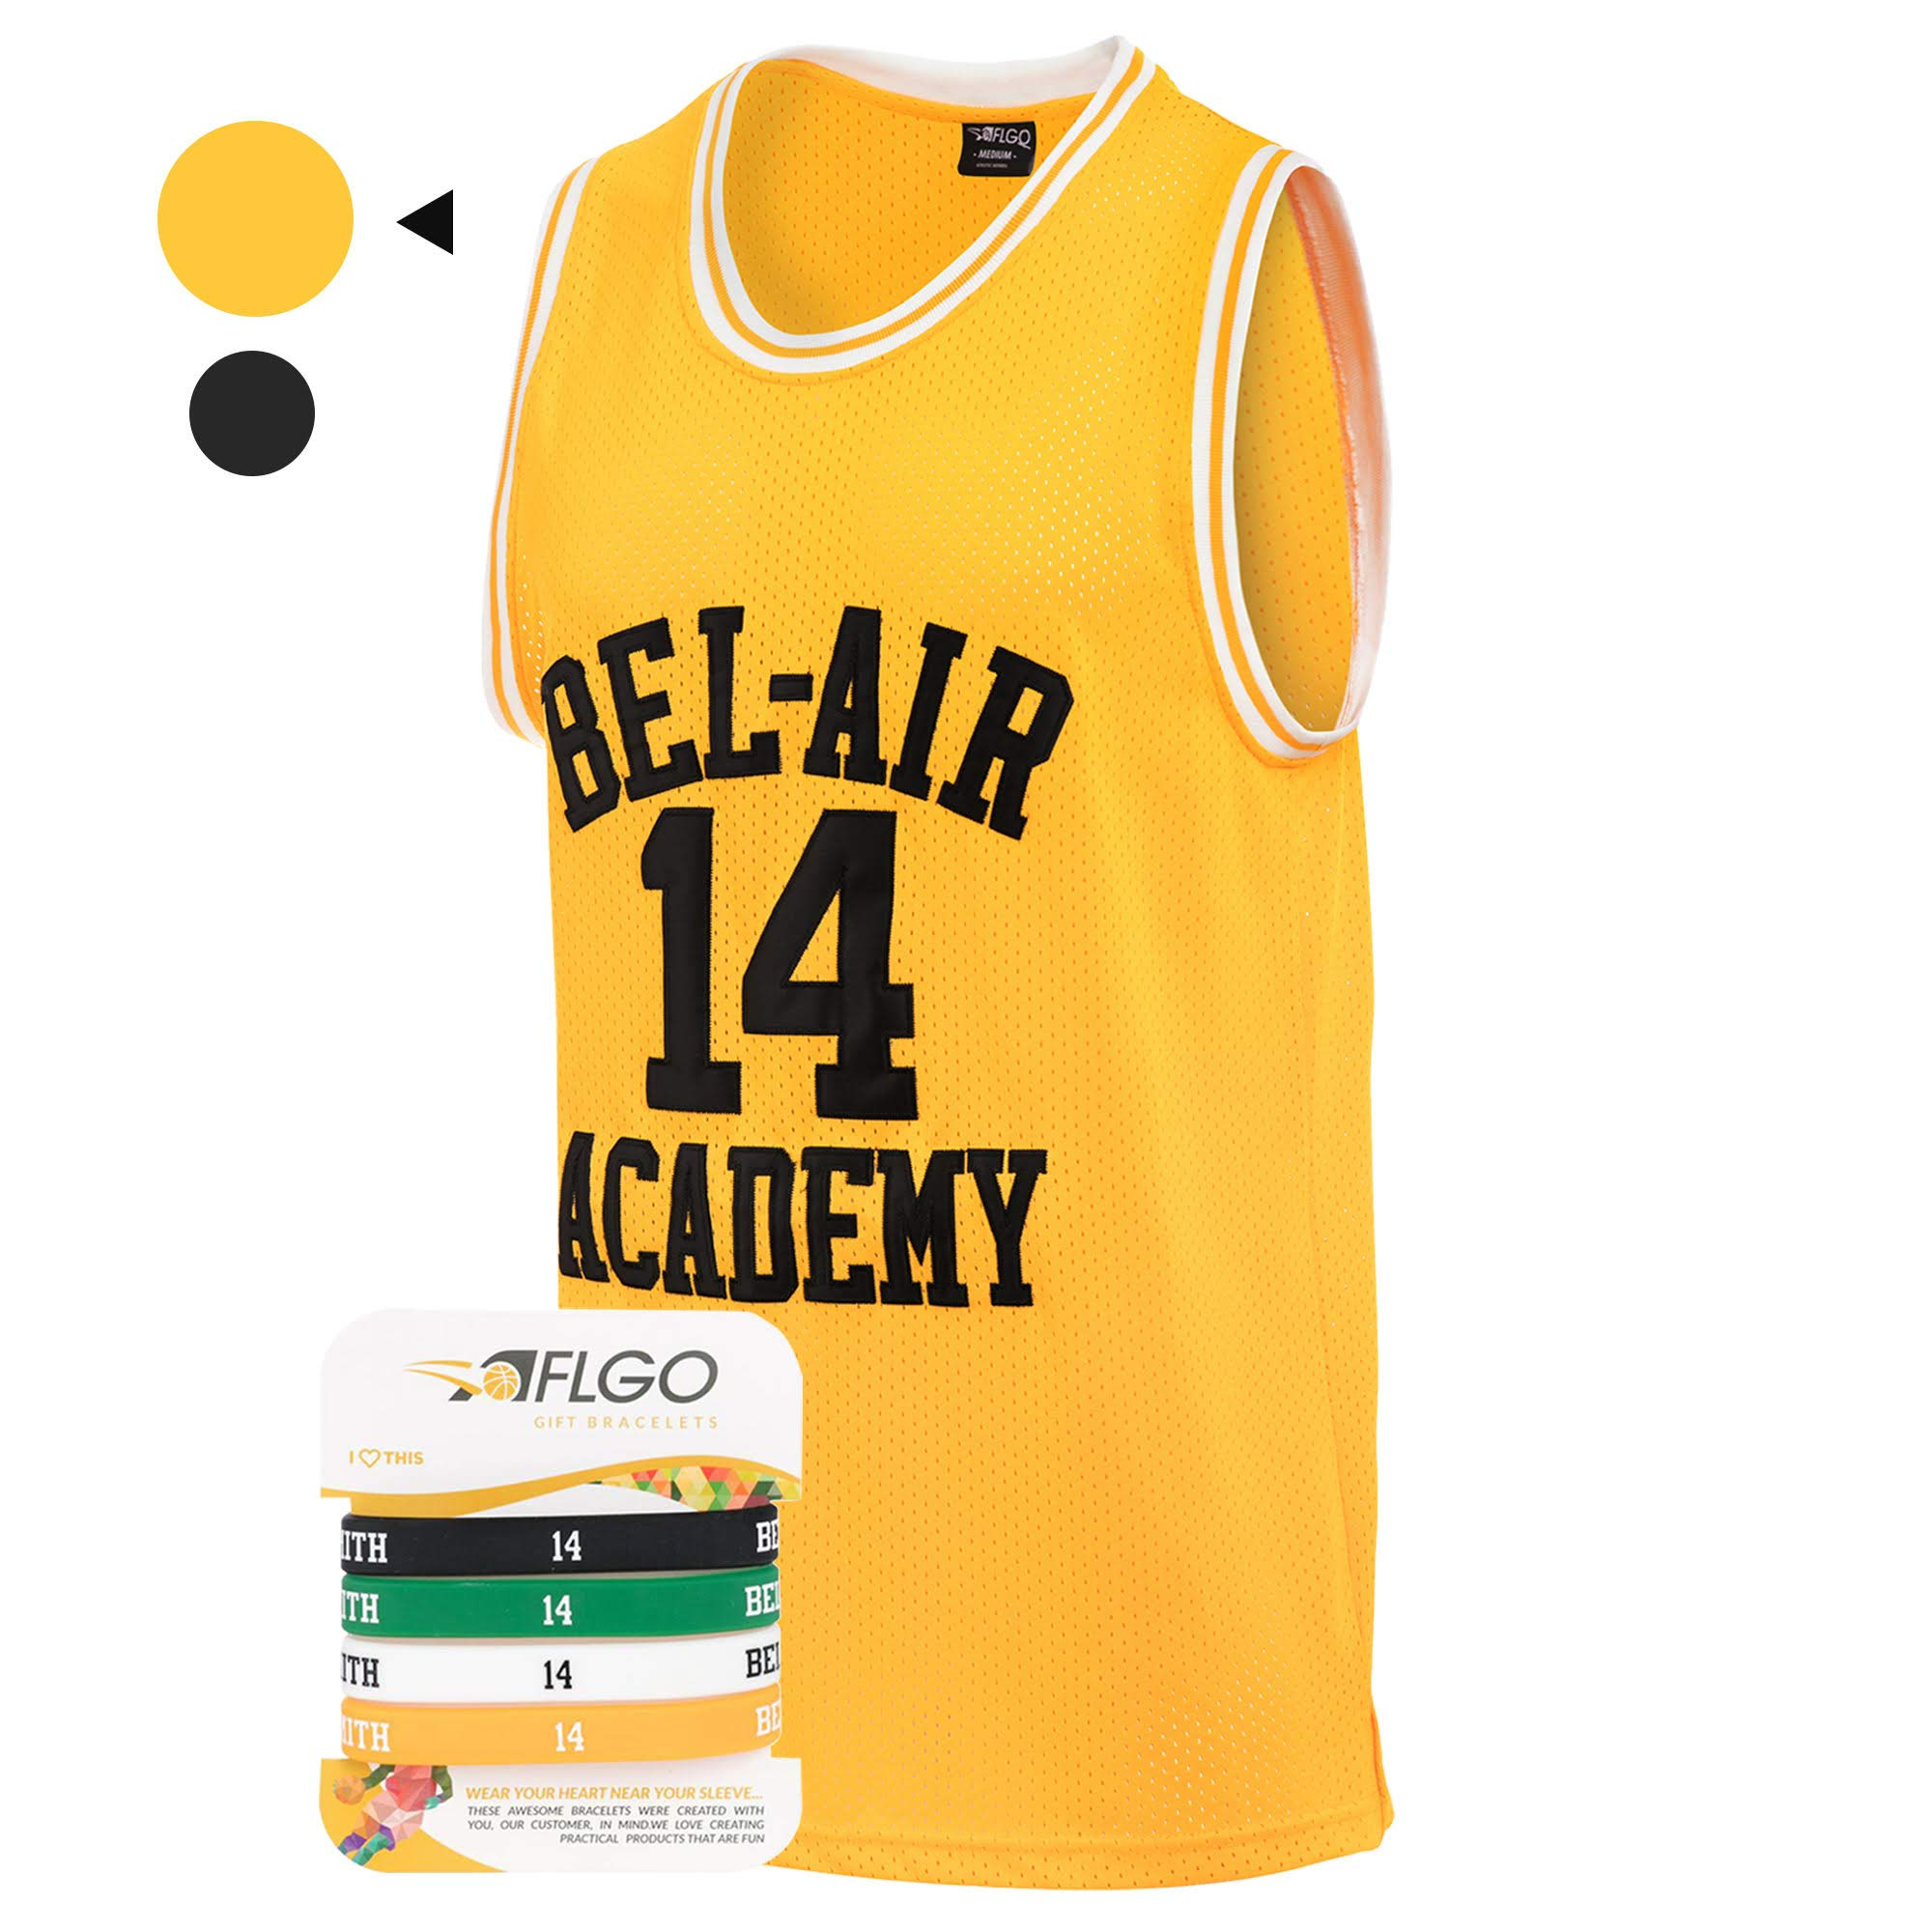 e1e1c07ea AFLGO Fresh Prince of Bel Air  14 Basketball Jersey S-XXXL – 90 s Clothing  Throwback Will Smith Costume Athletic Apparel Clothing Top Bonus Combo Set  with ...